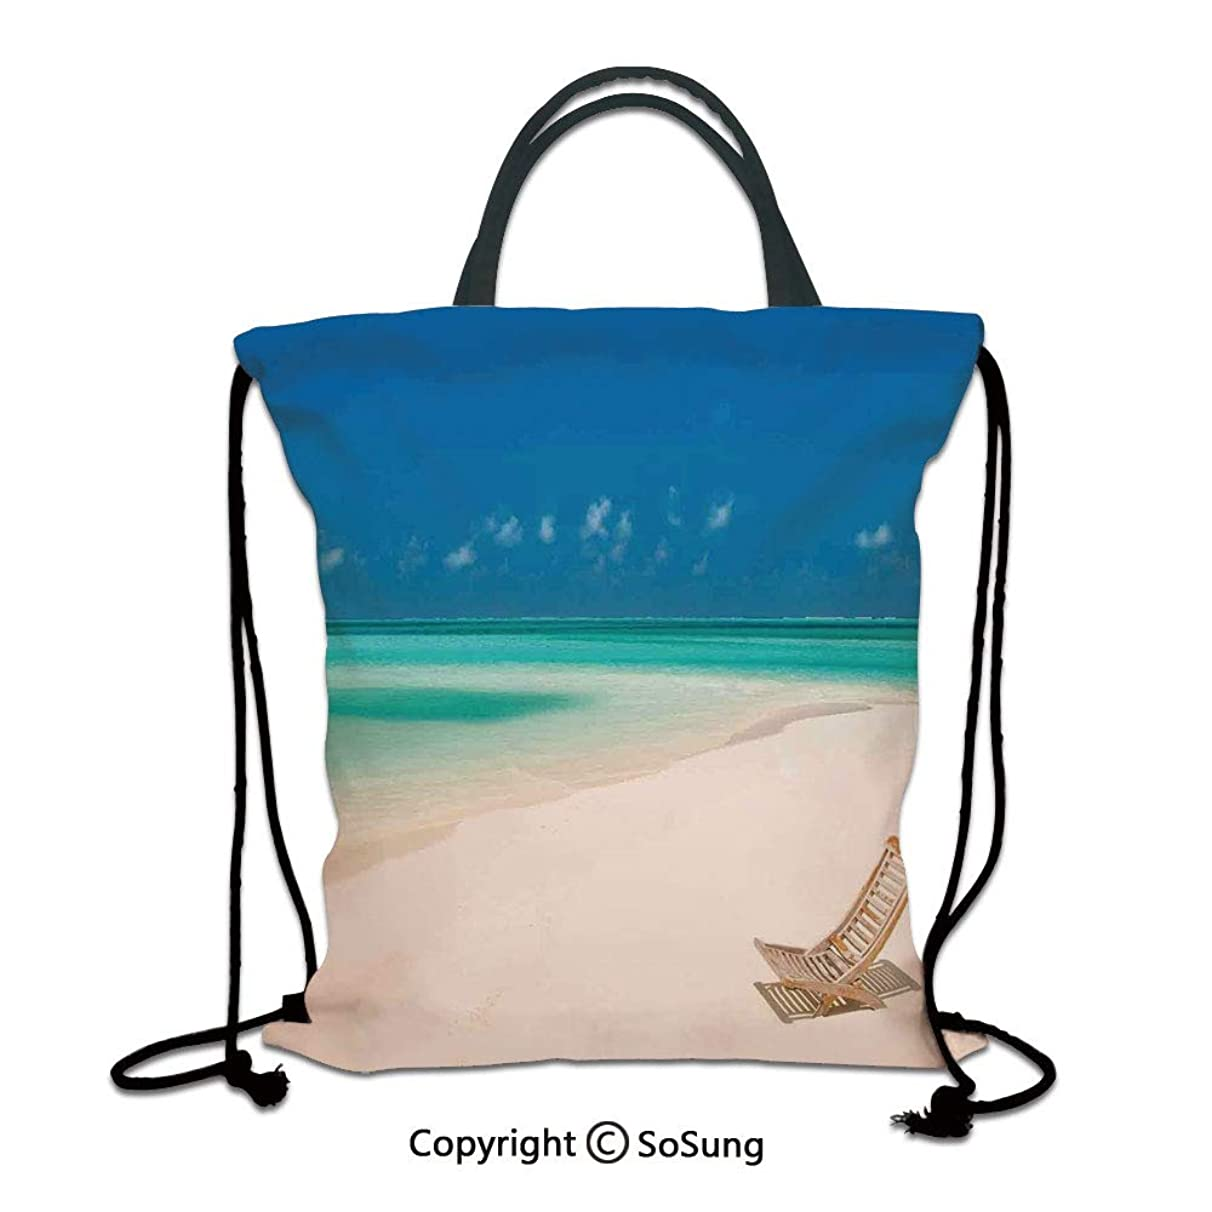 Seaside 3D Print Drawstring Bag String Backpack,Deck Chair on a Sandy Tropical Beach Relaxing Holidays Seascape Picture,for Travel Gym School Beach Shopping,Ivory Blue and Aqua